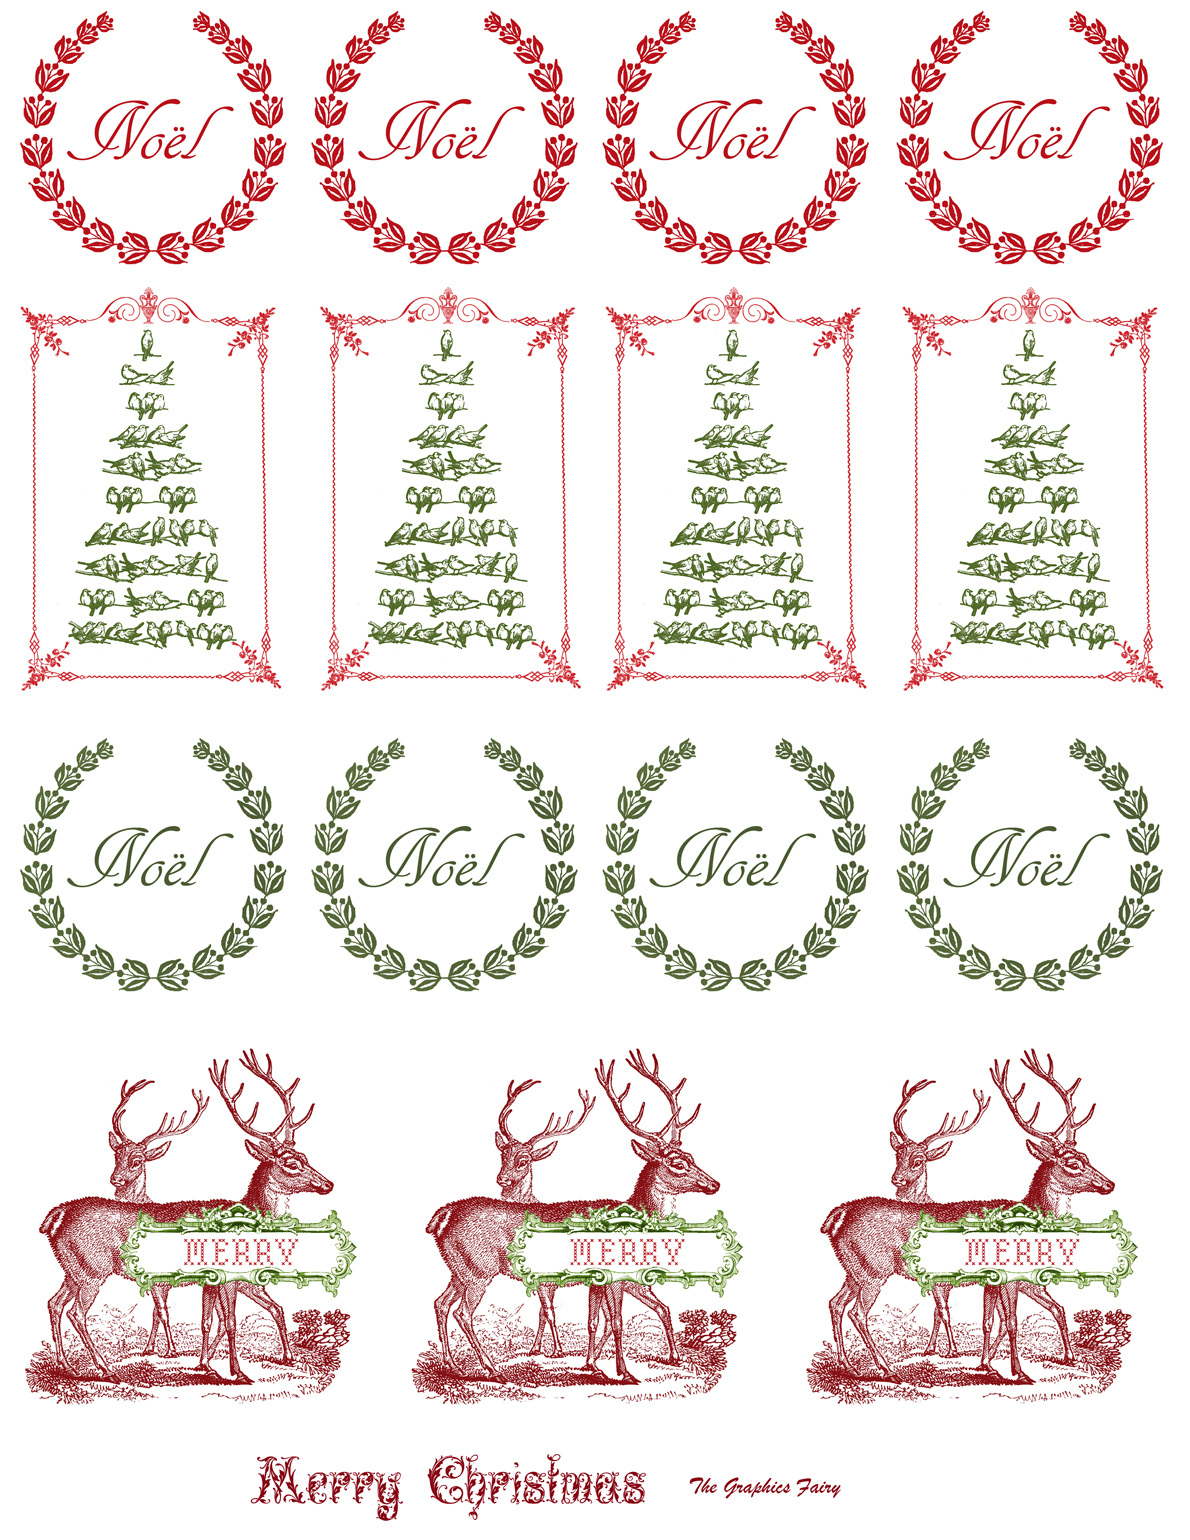 Printable - Vintage Christmas Stickers - The Graphics Fairy - Free Printable Holiday Stickers